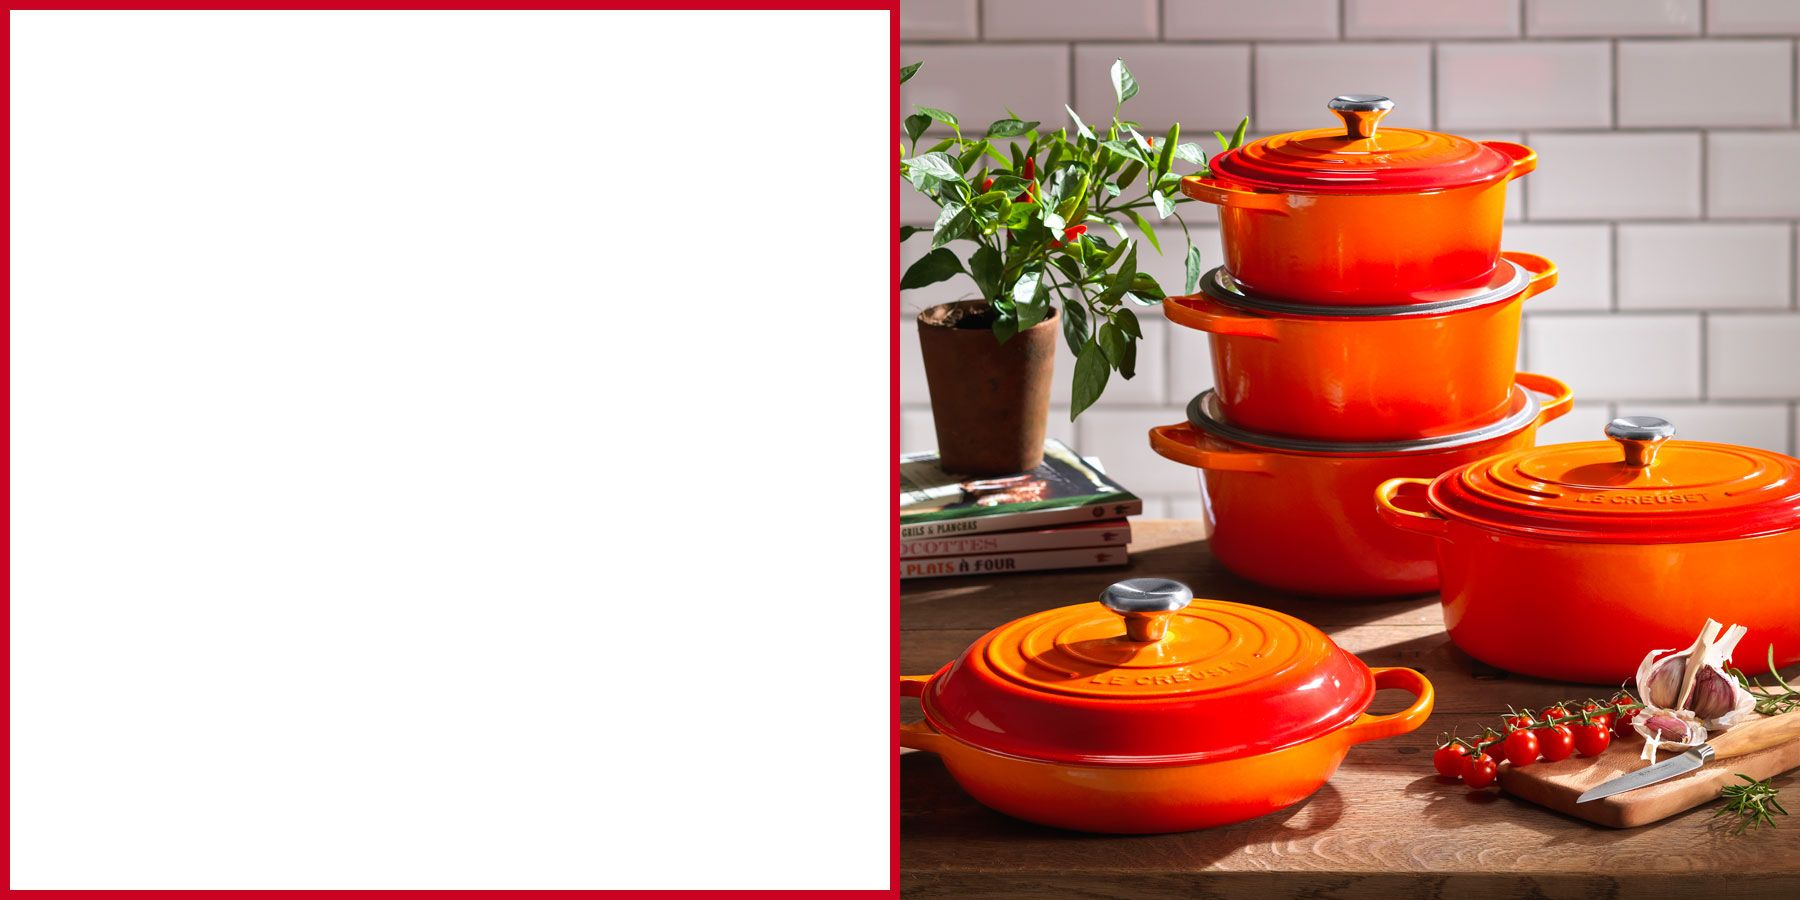 Cookware | Pans, Utensils, Bread Bins, Kitchen Scales & Knives ...